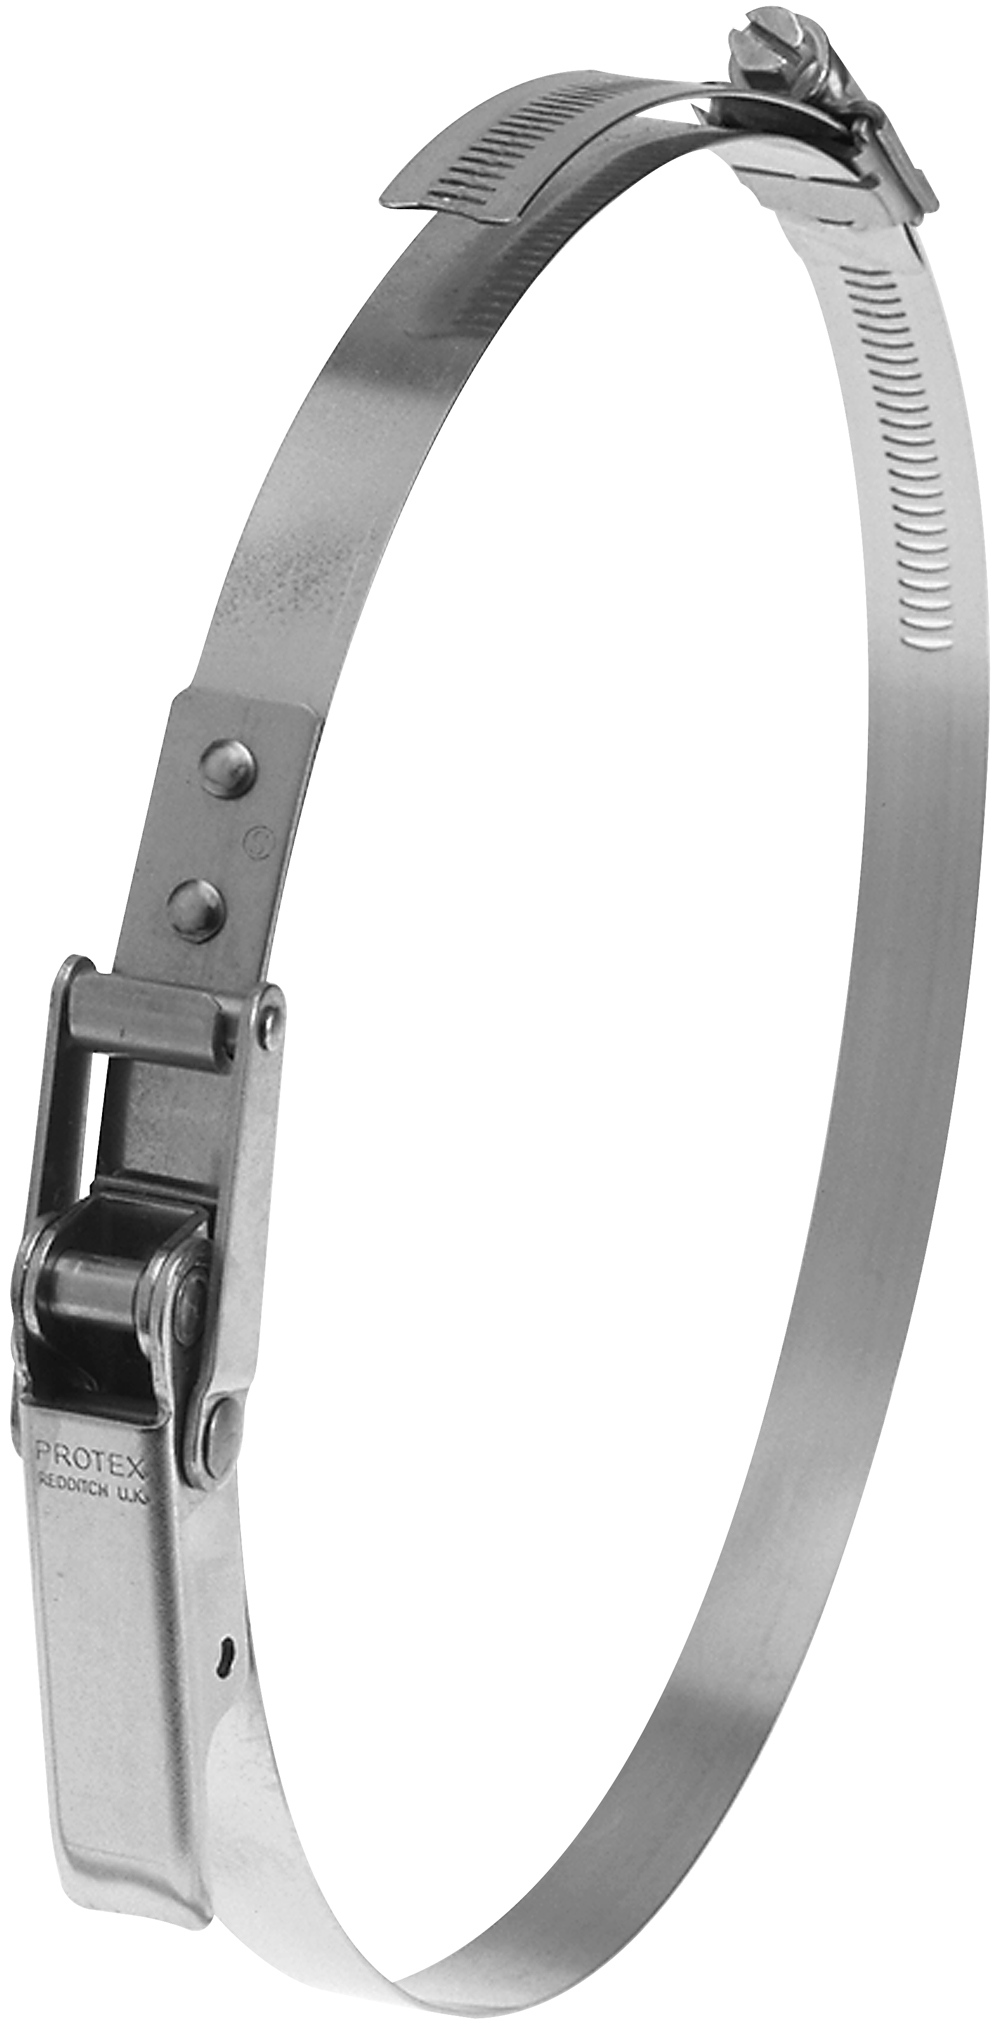 410-455mm Diameter Hi-Torque Rigid Claw Stainless Steel Quick Release Heavy Duty Bandclamp (Natural)